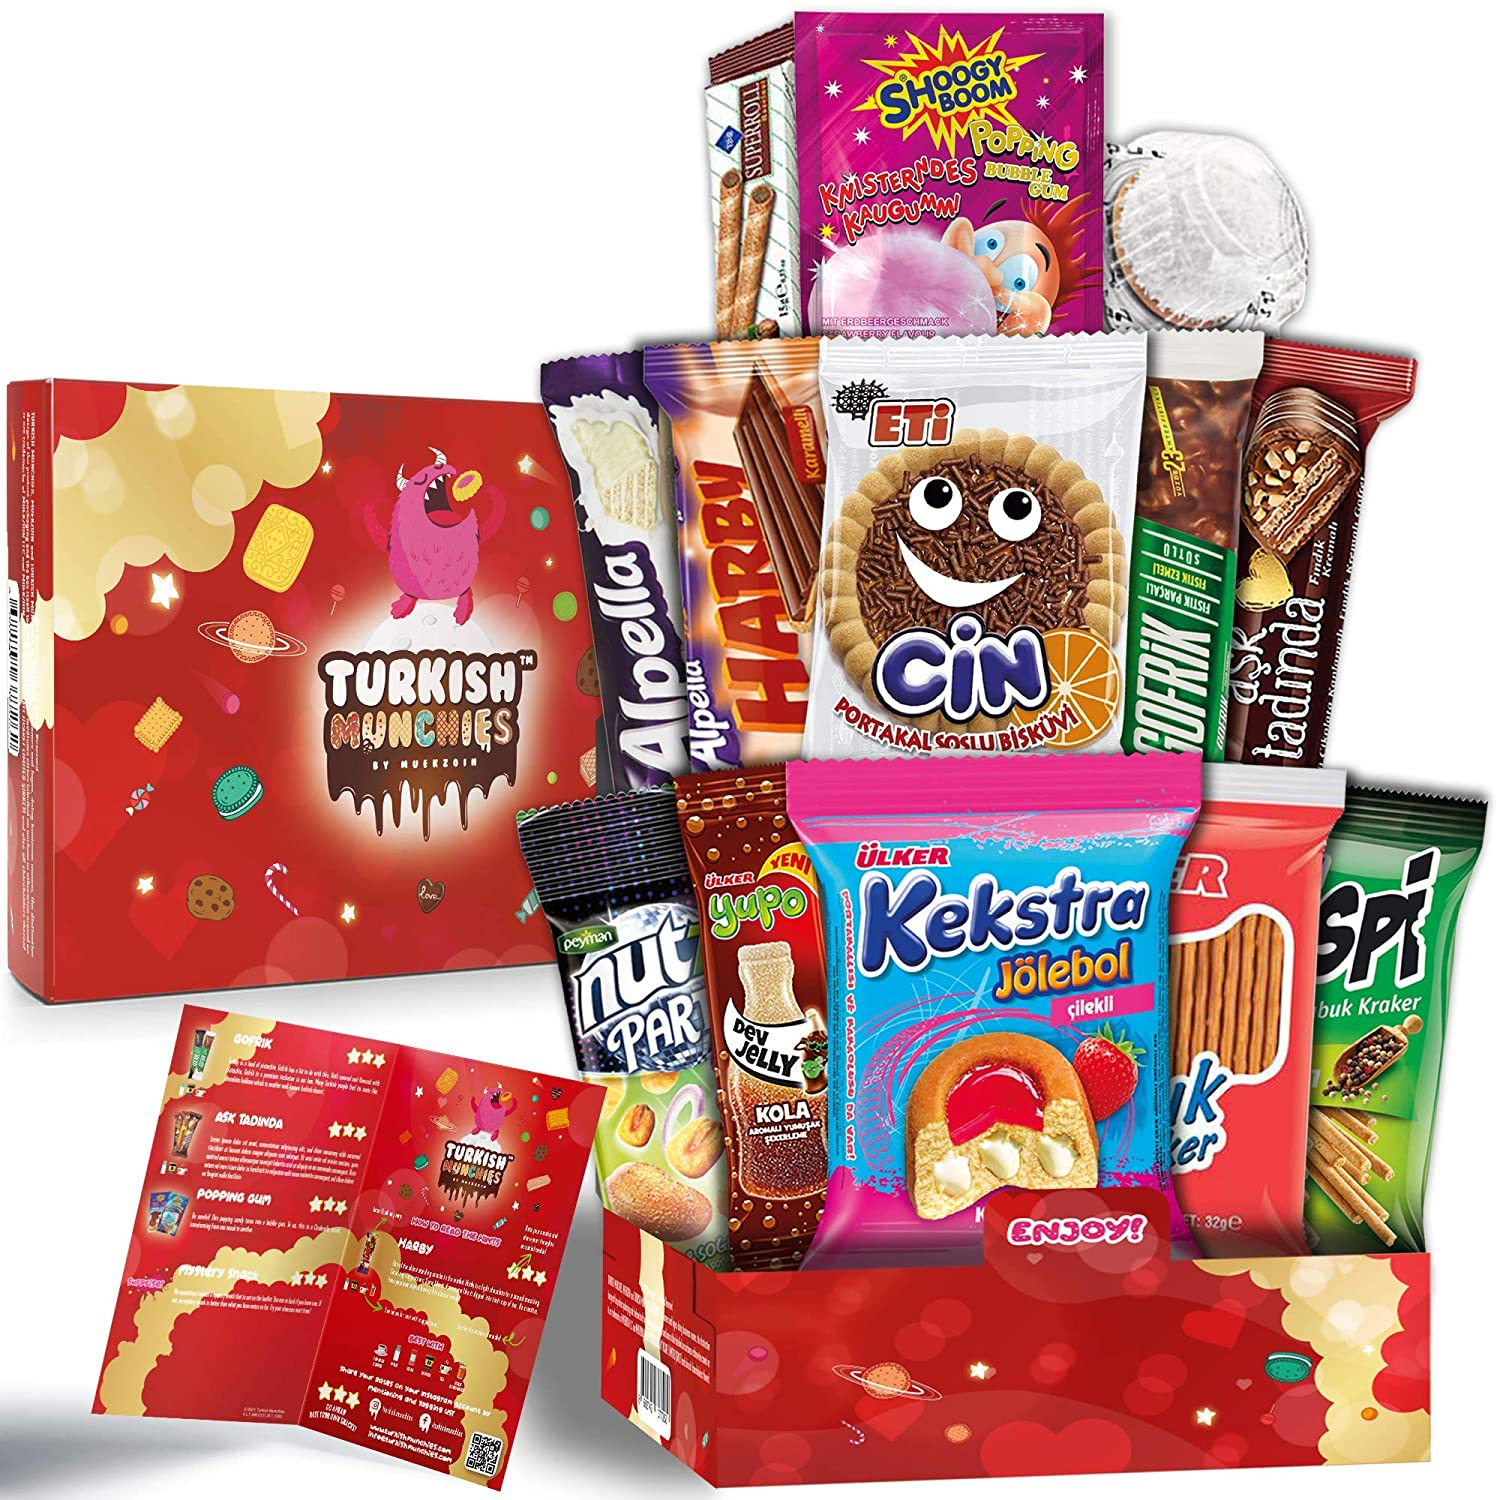 Midi Special Premium International Snacks Variety Pack Care Package for Adults and Kids, Ultimate Assortment of Turkish Treats, Mix variety pack of snacks, Best Foreign Candy or Foreign Snacks Box